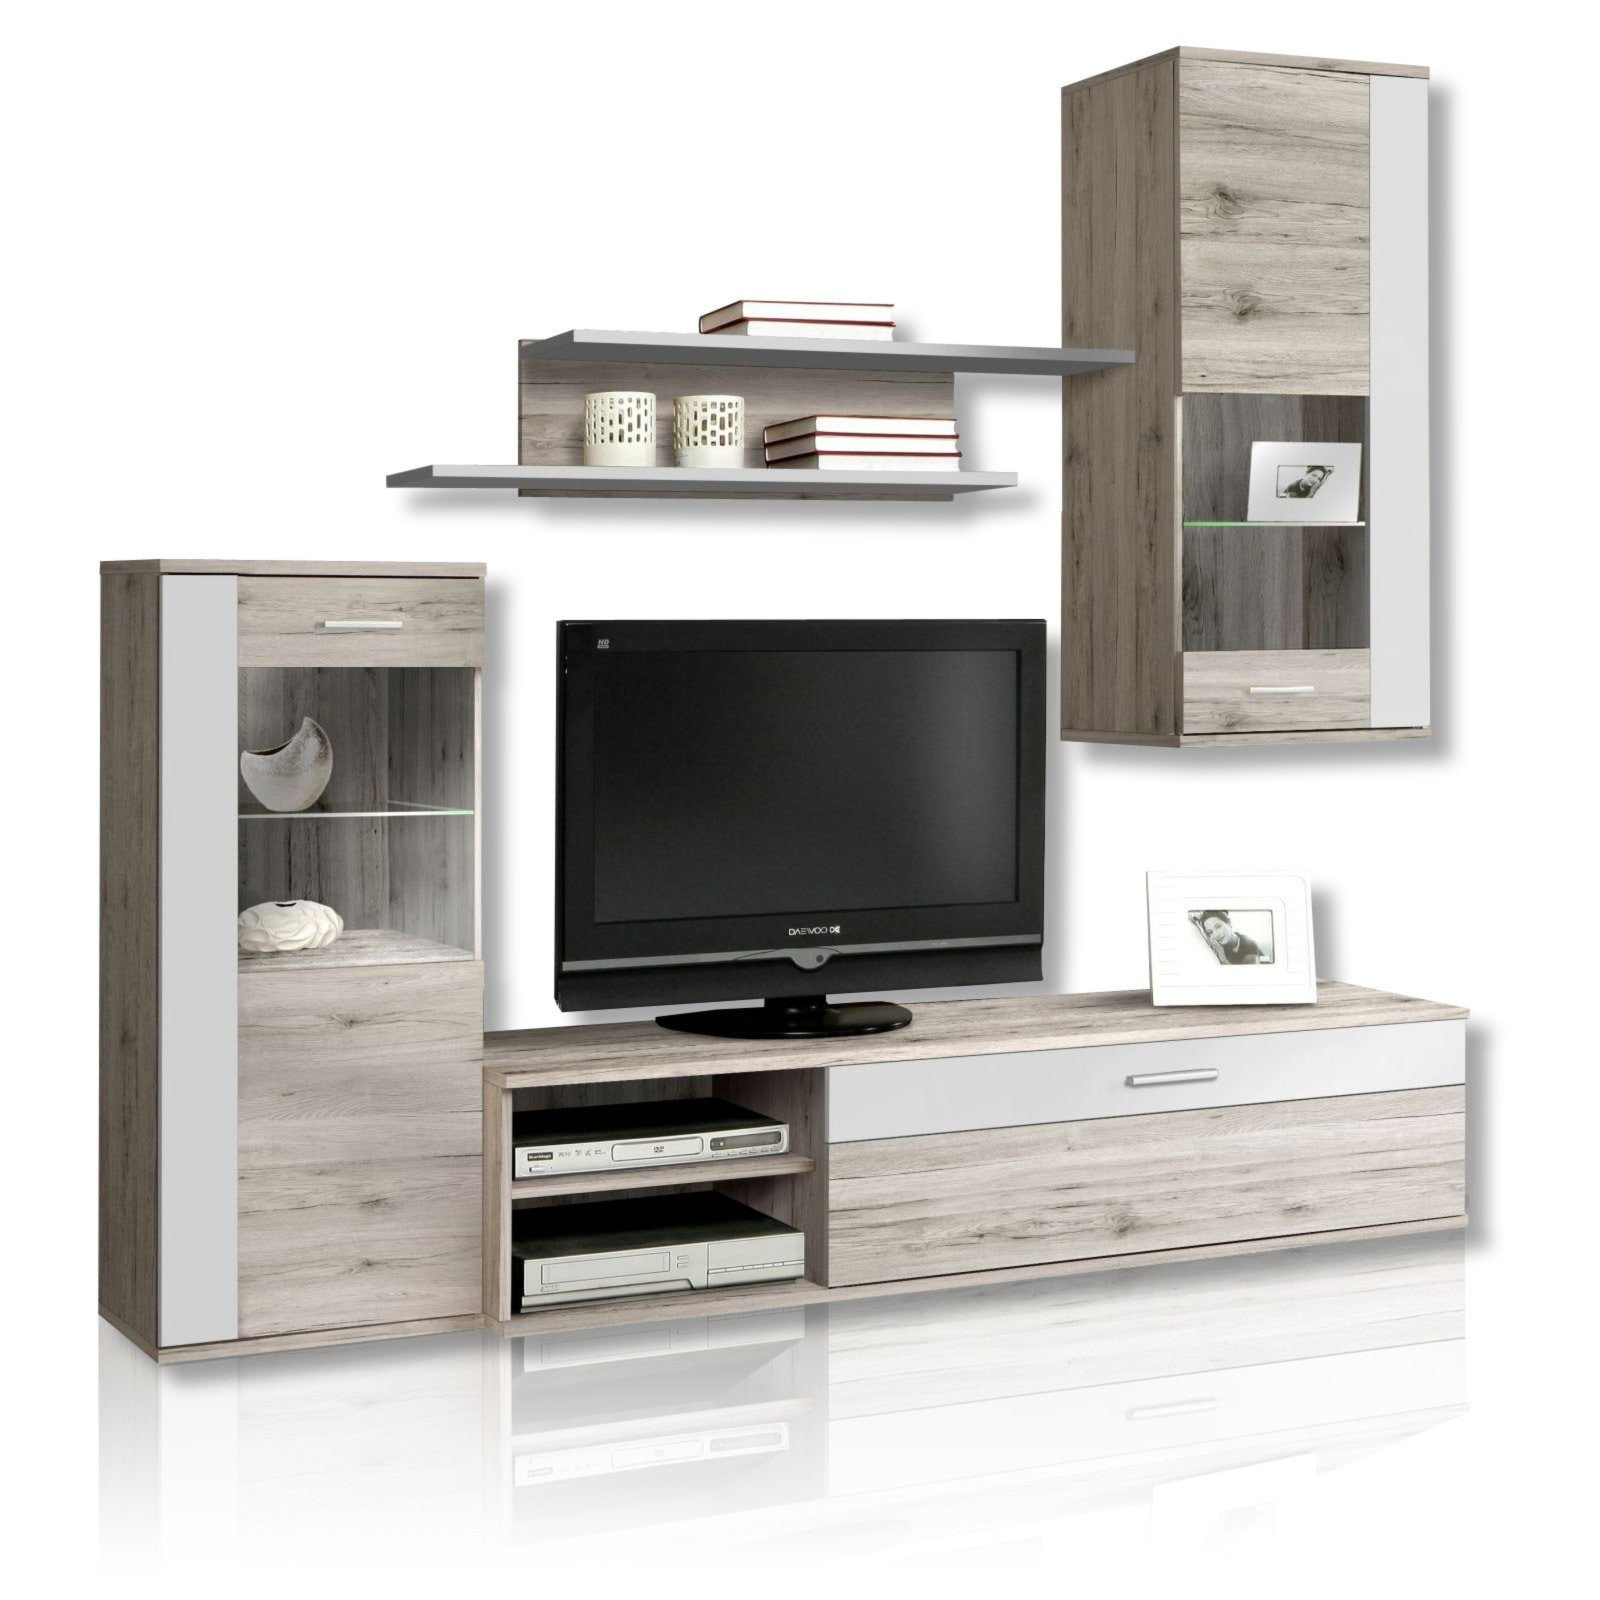 wohnwand hot shot sandeiche wei wohnw nde wohnw nde. Black Bedroom Furniture Sets. Home Design Ideas